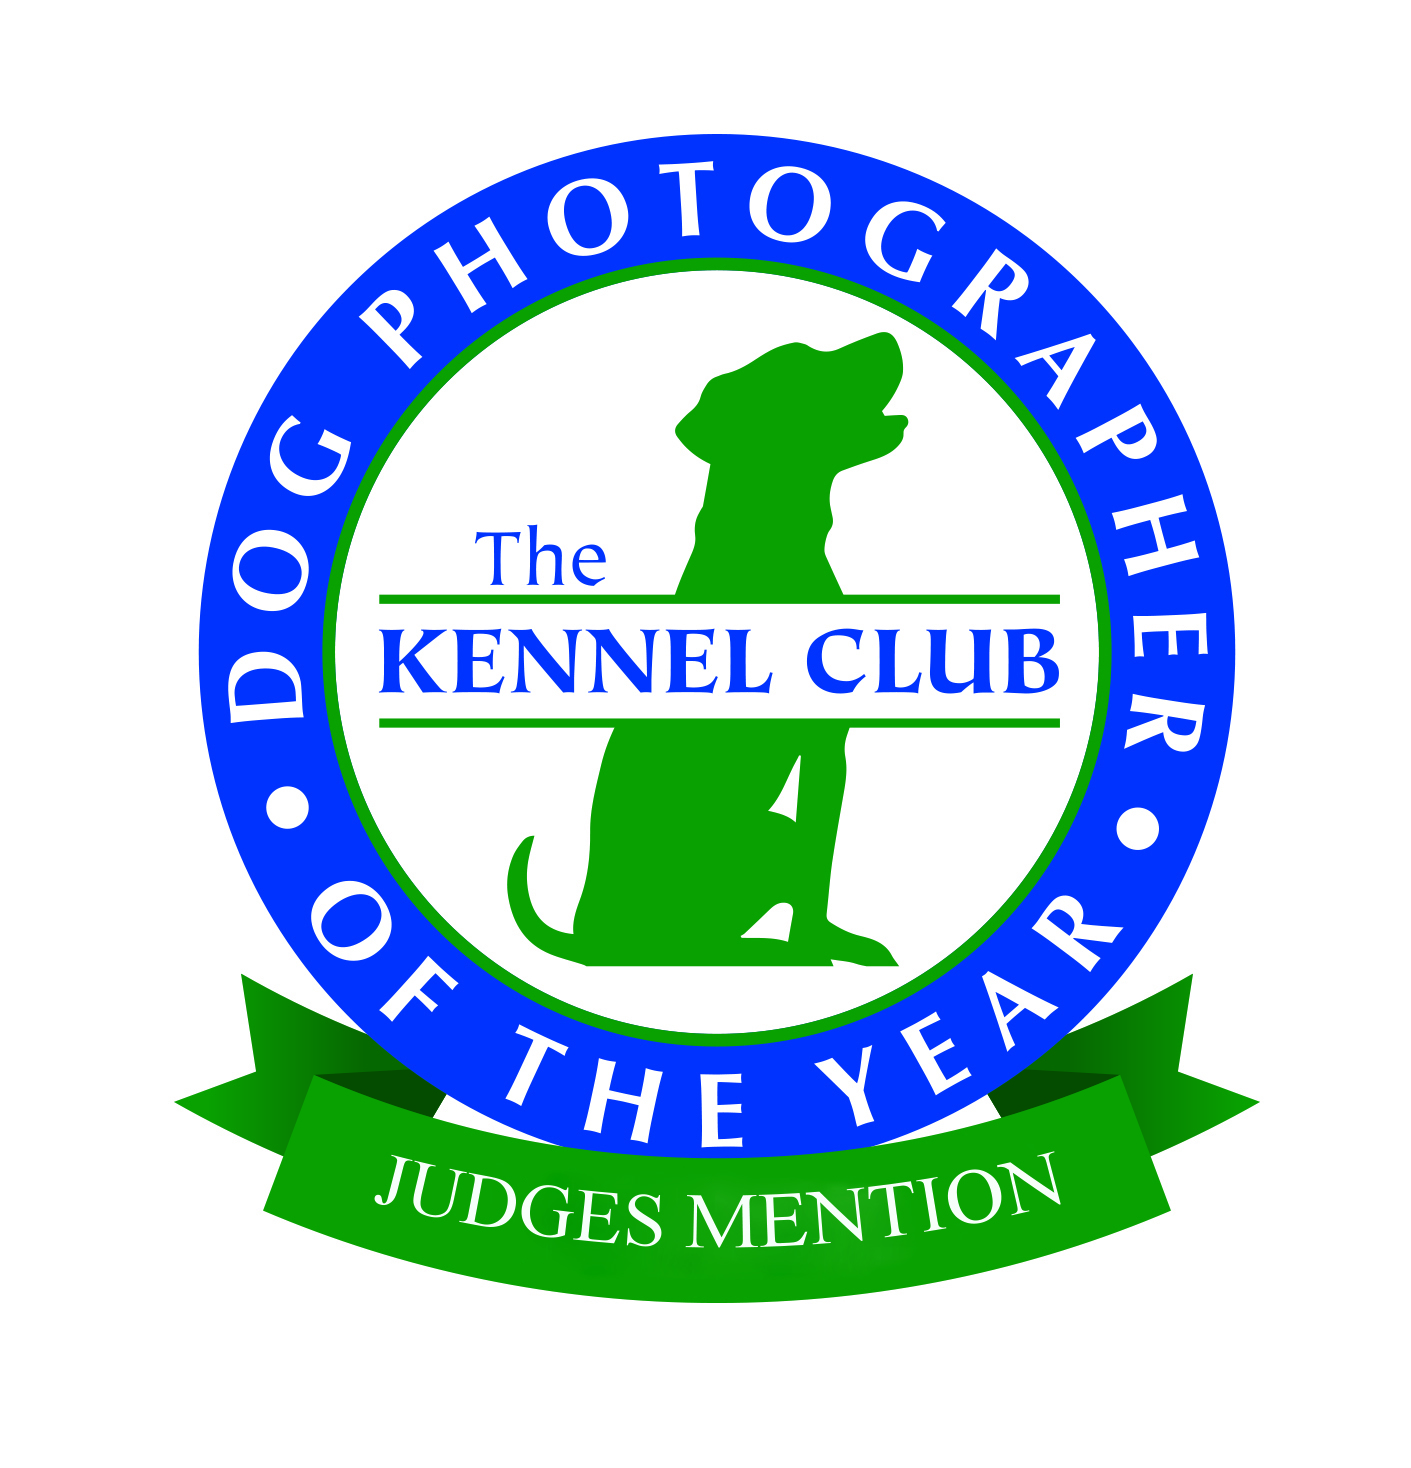 DPOTY_Official Judges Mention Logo_The Kennel Club©.jpg